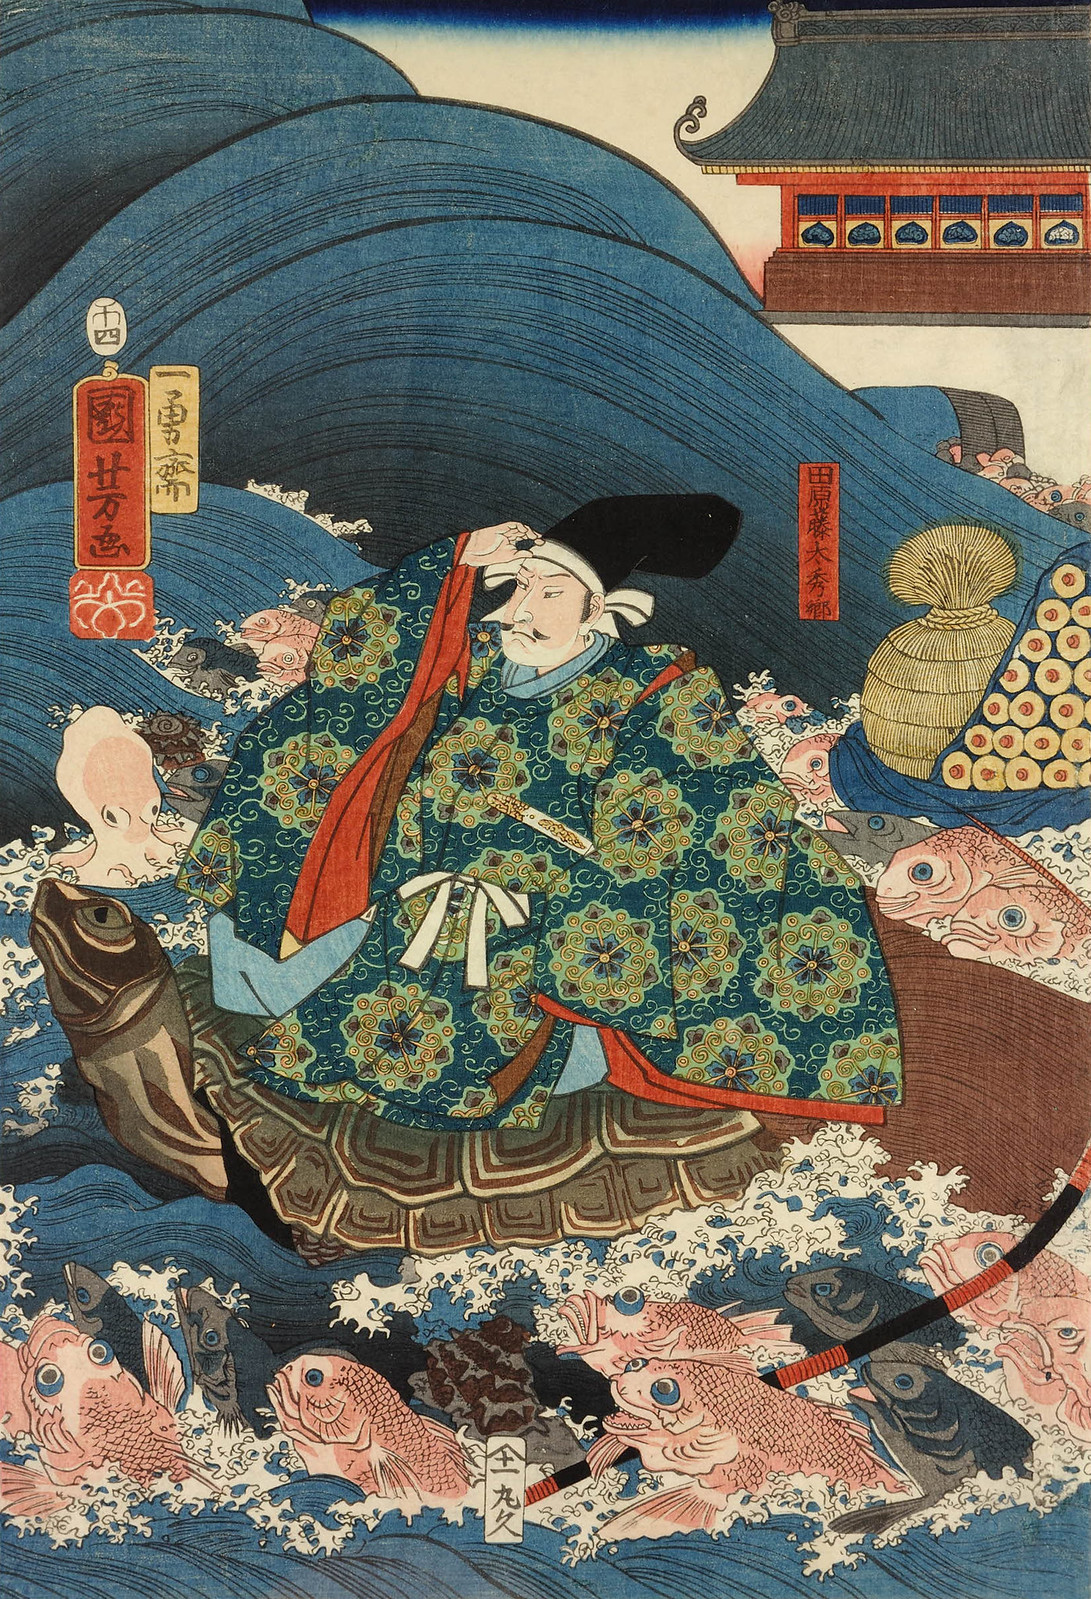 Utagawa Kuniyoshi - Tawara Toda Hidesato escorted through the waves on the back of a giant turtle by the Dragon King's fishy retainers, having received the Three Gifts. 1858 (middle panel)